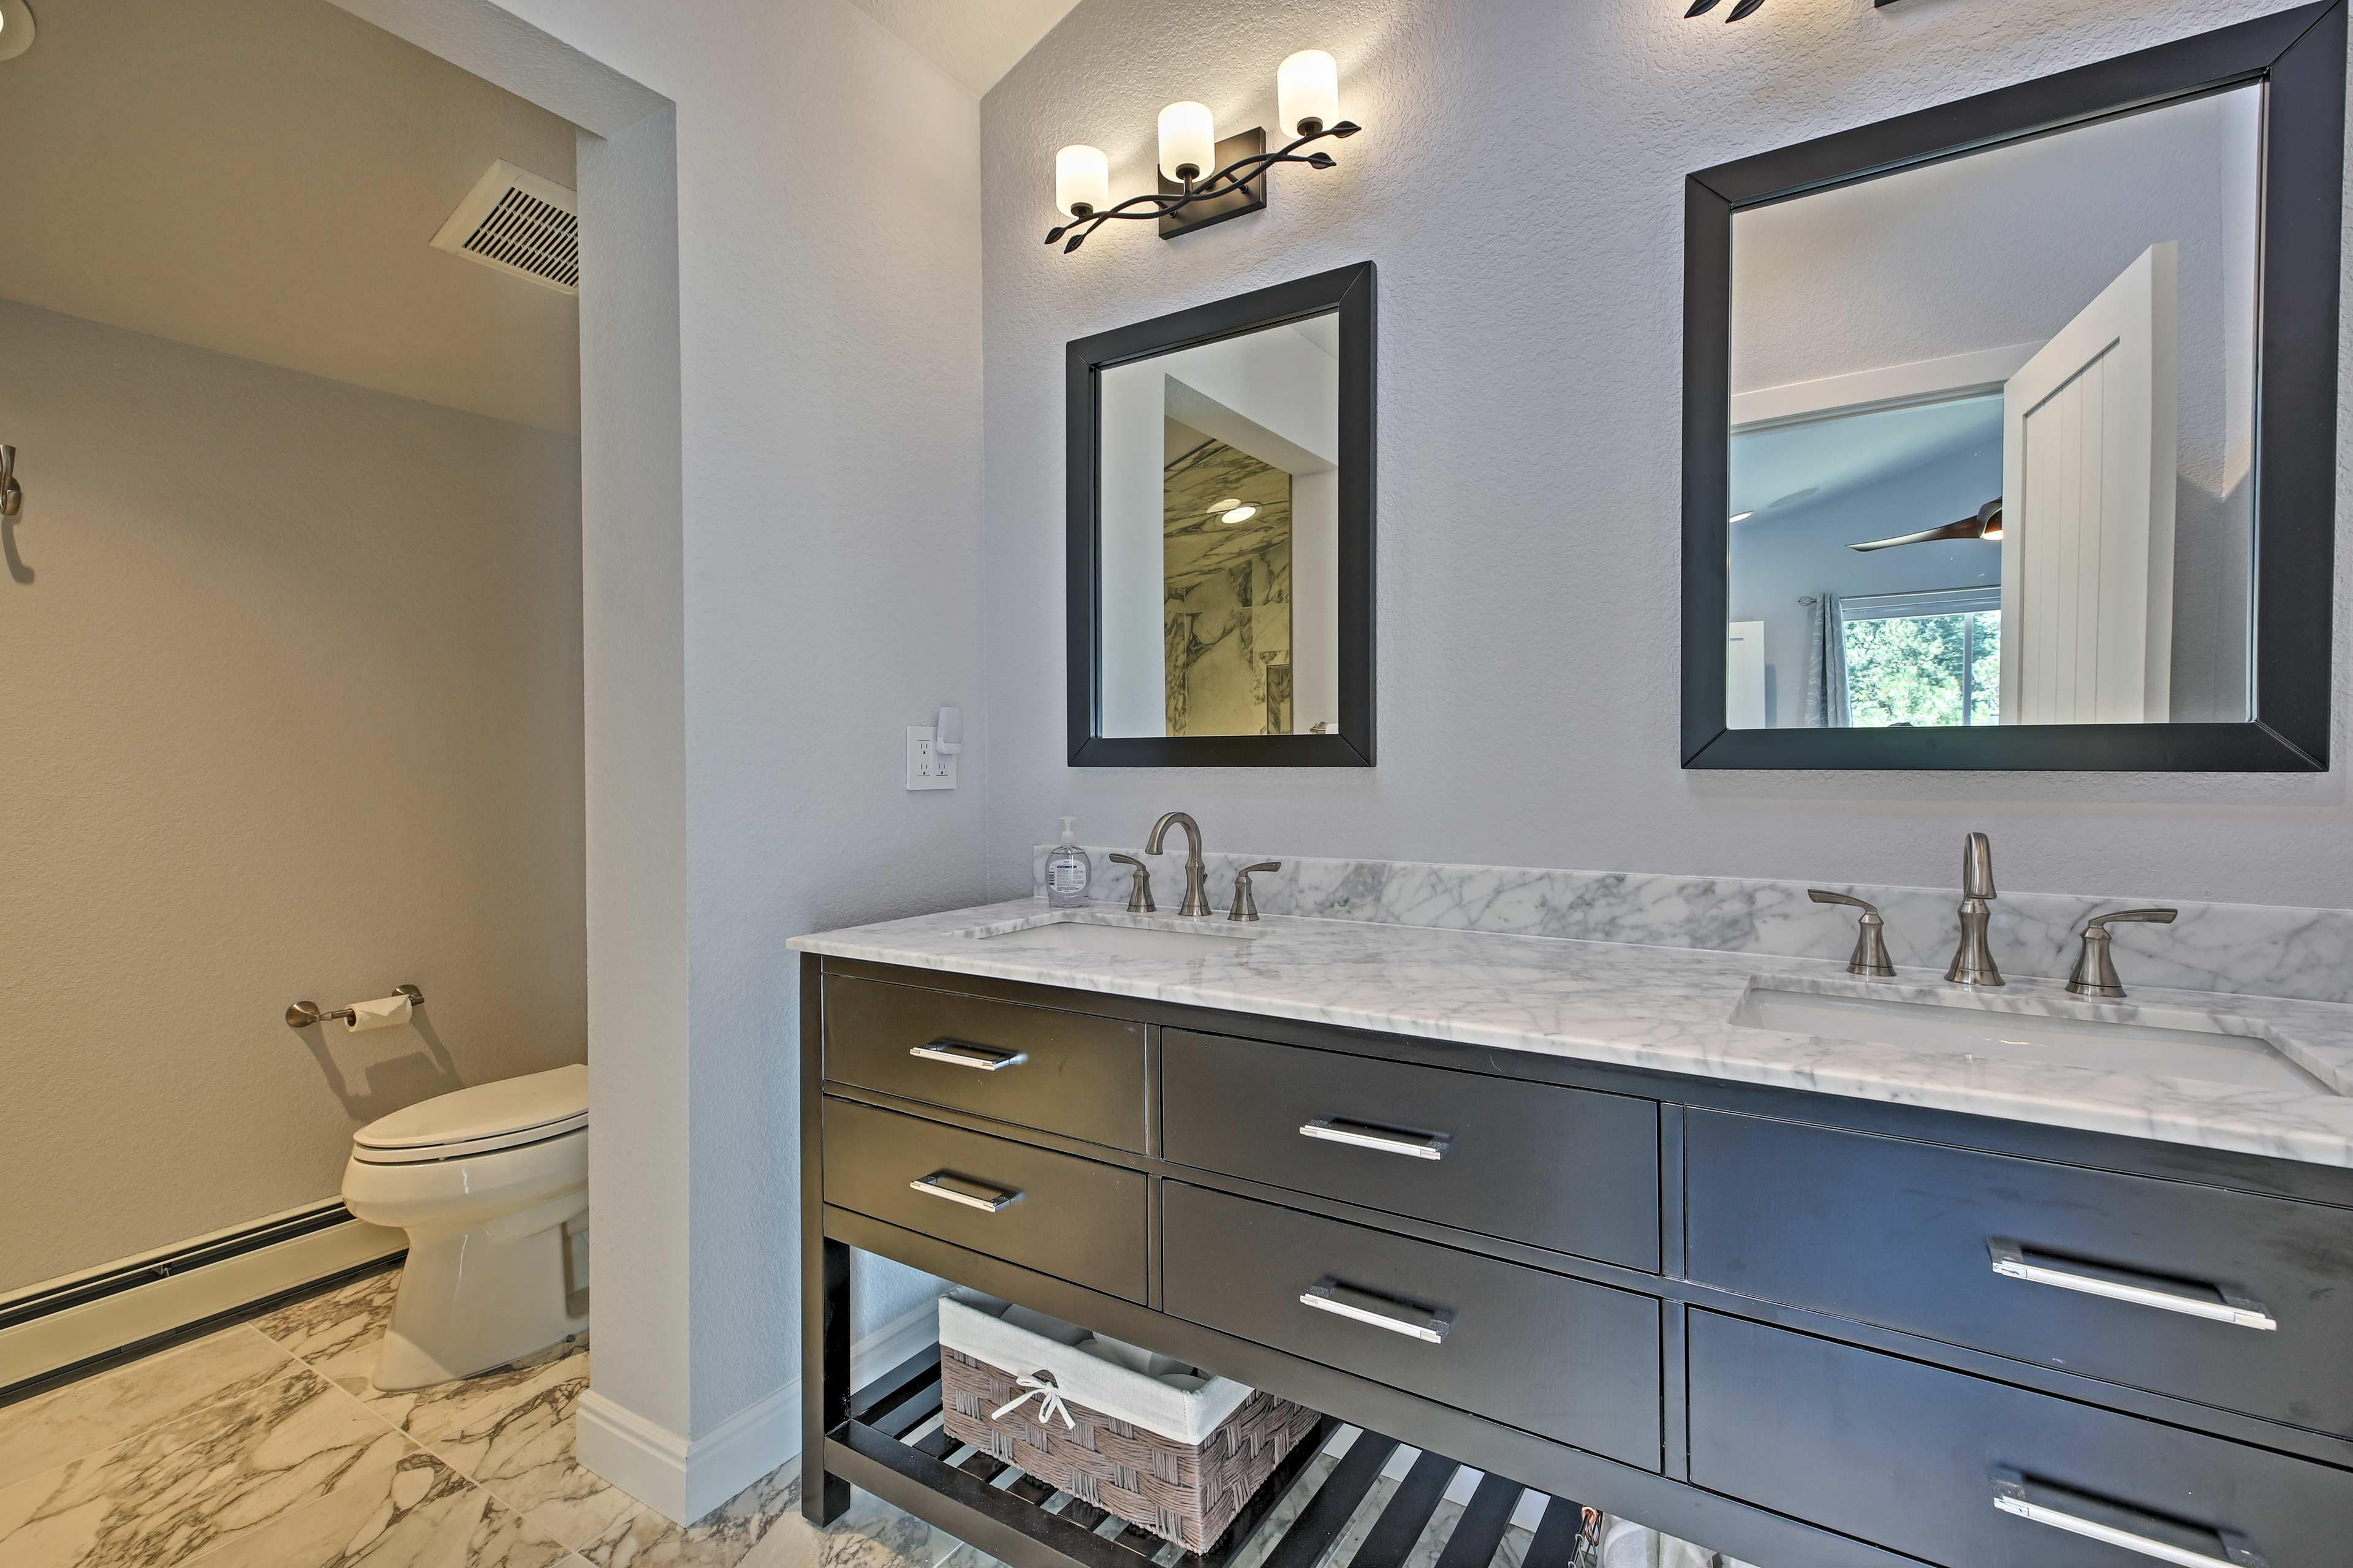 The bathroom is nothing short of immaculate.